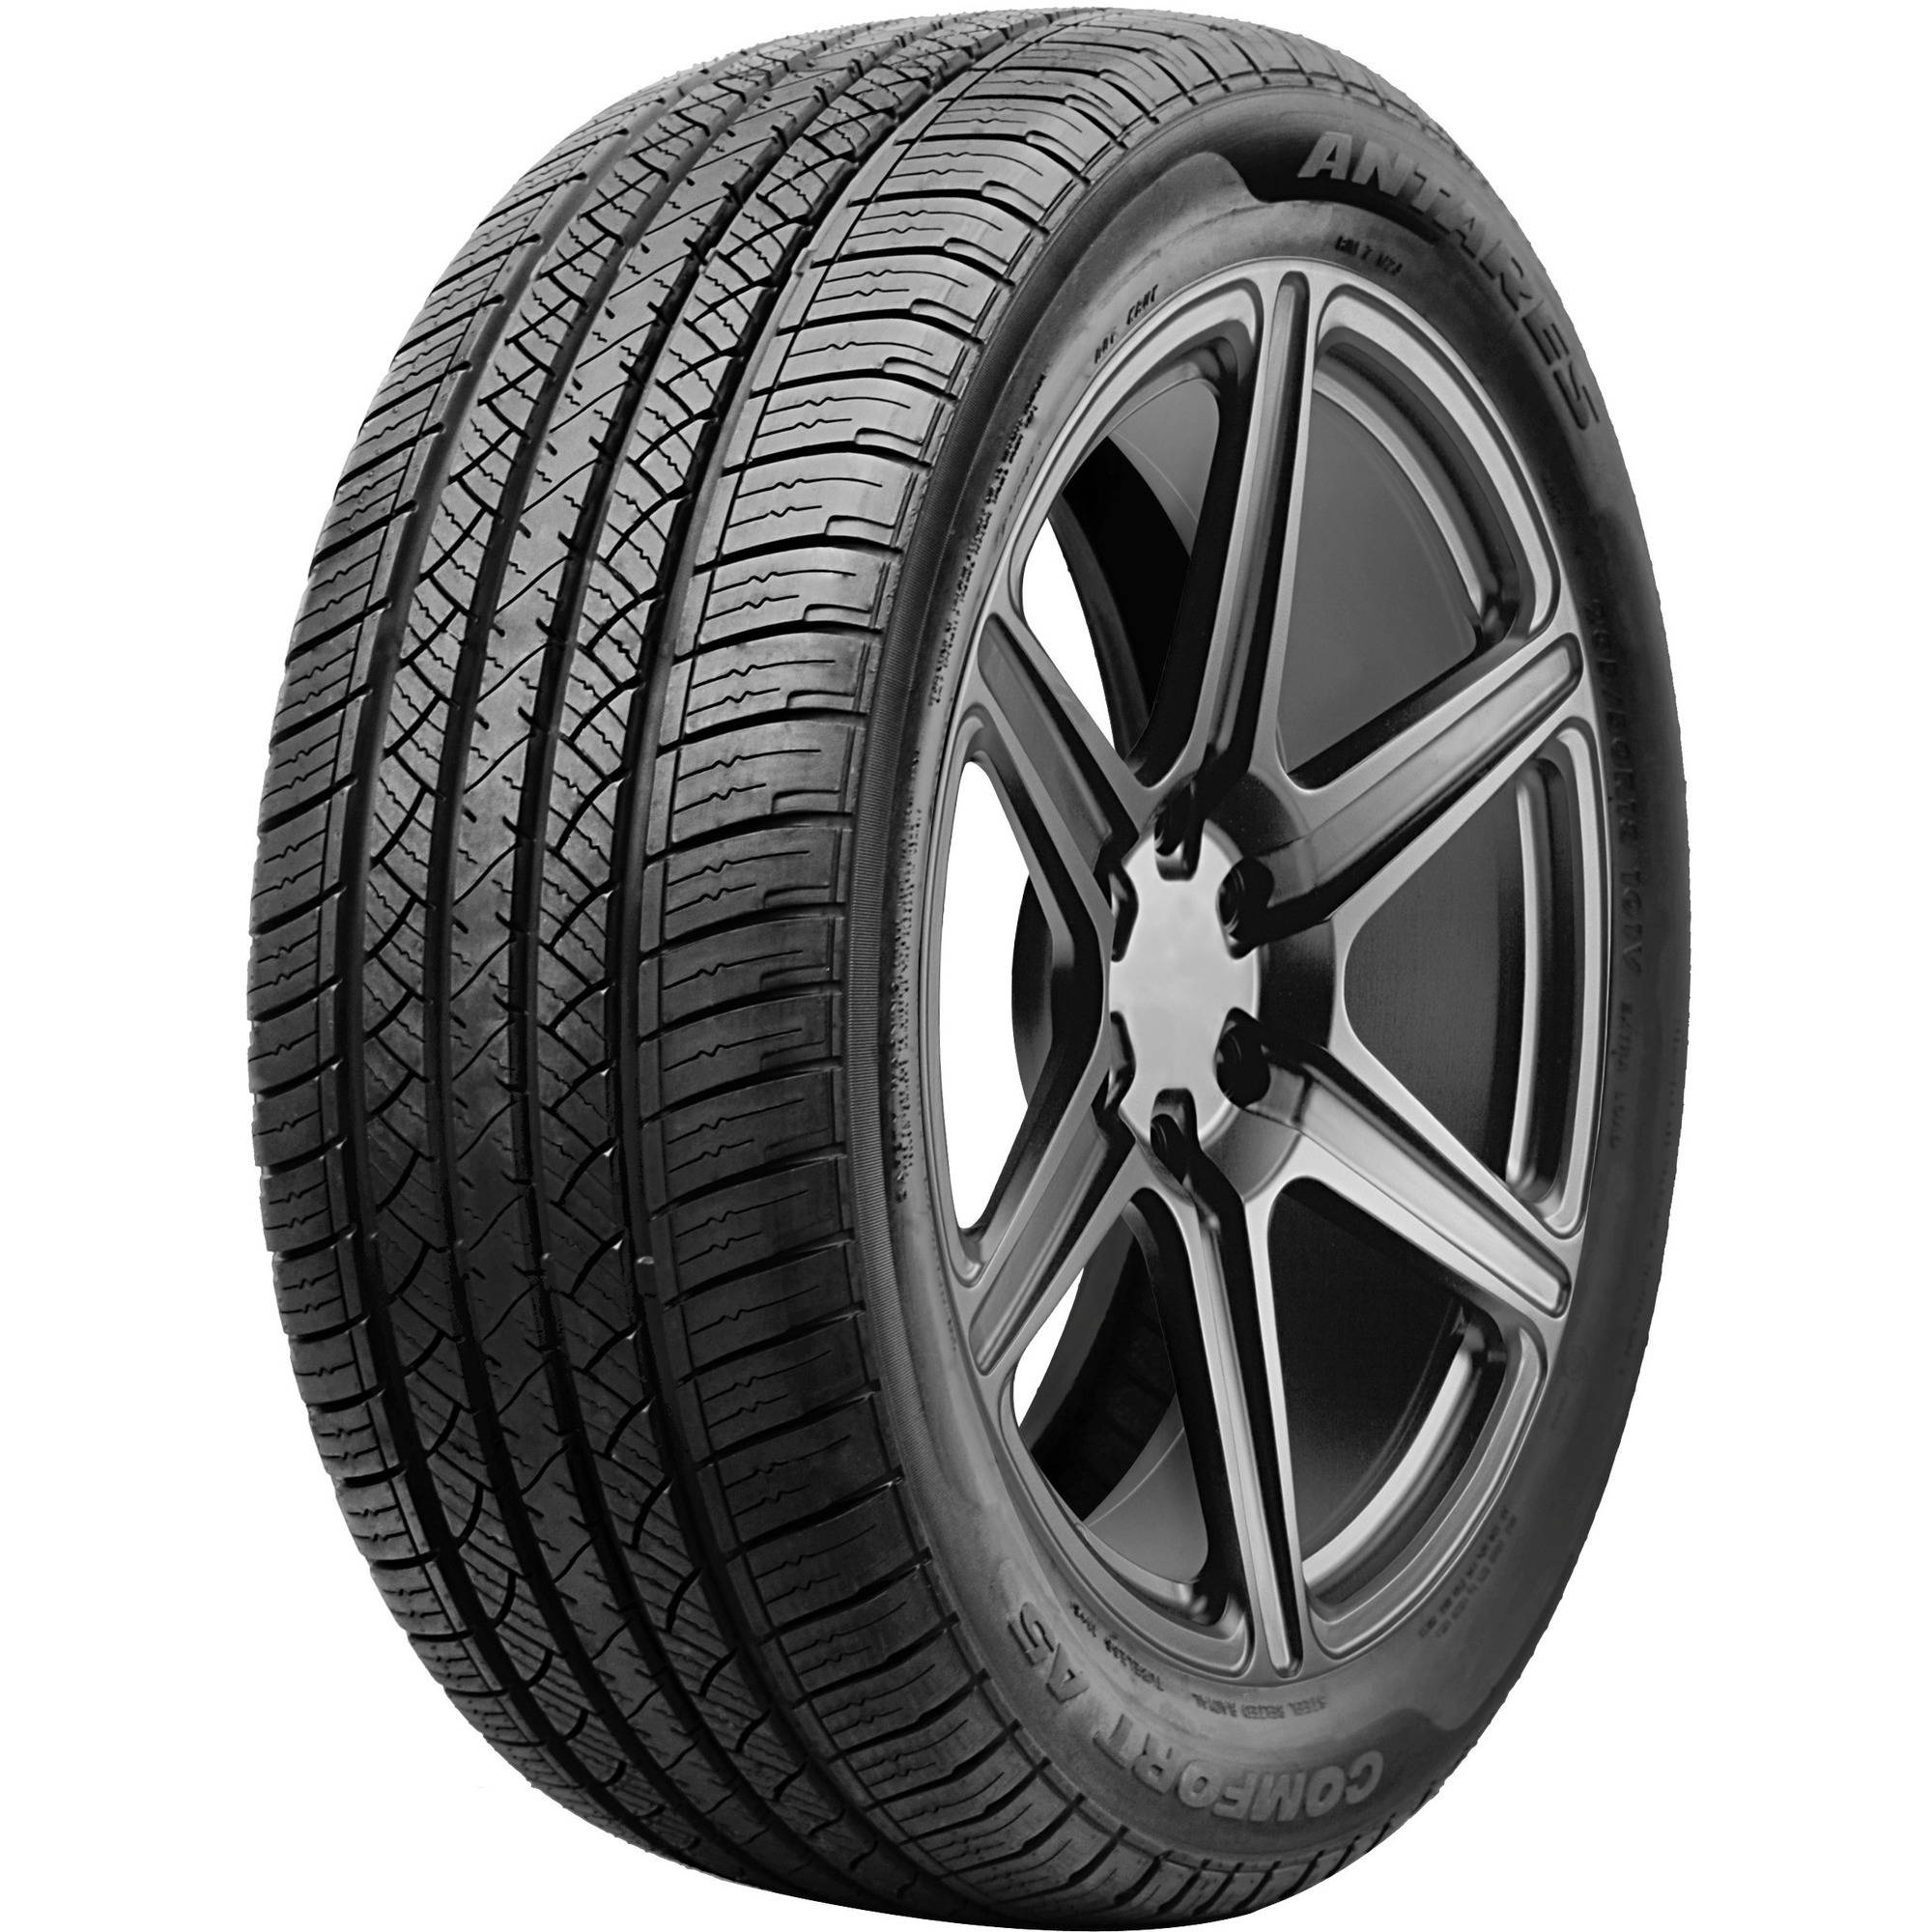 Antares Comfort A5 235/65R18 106S Tire